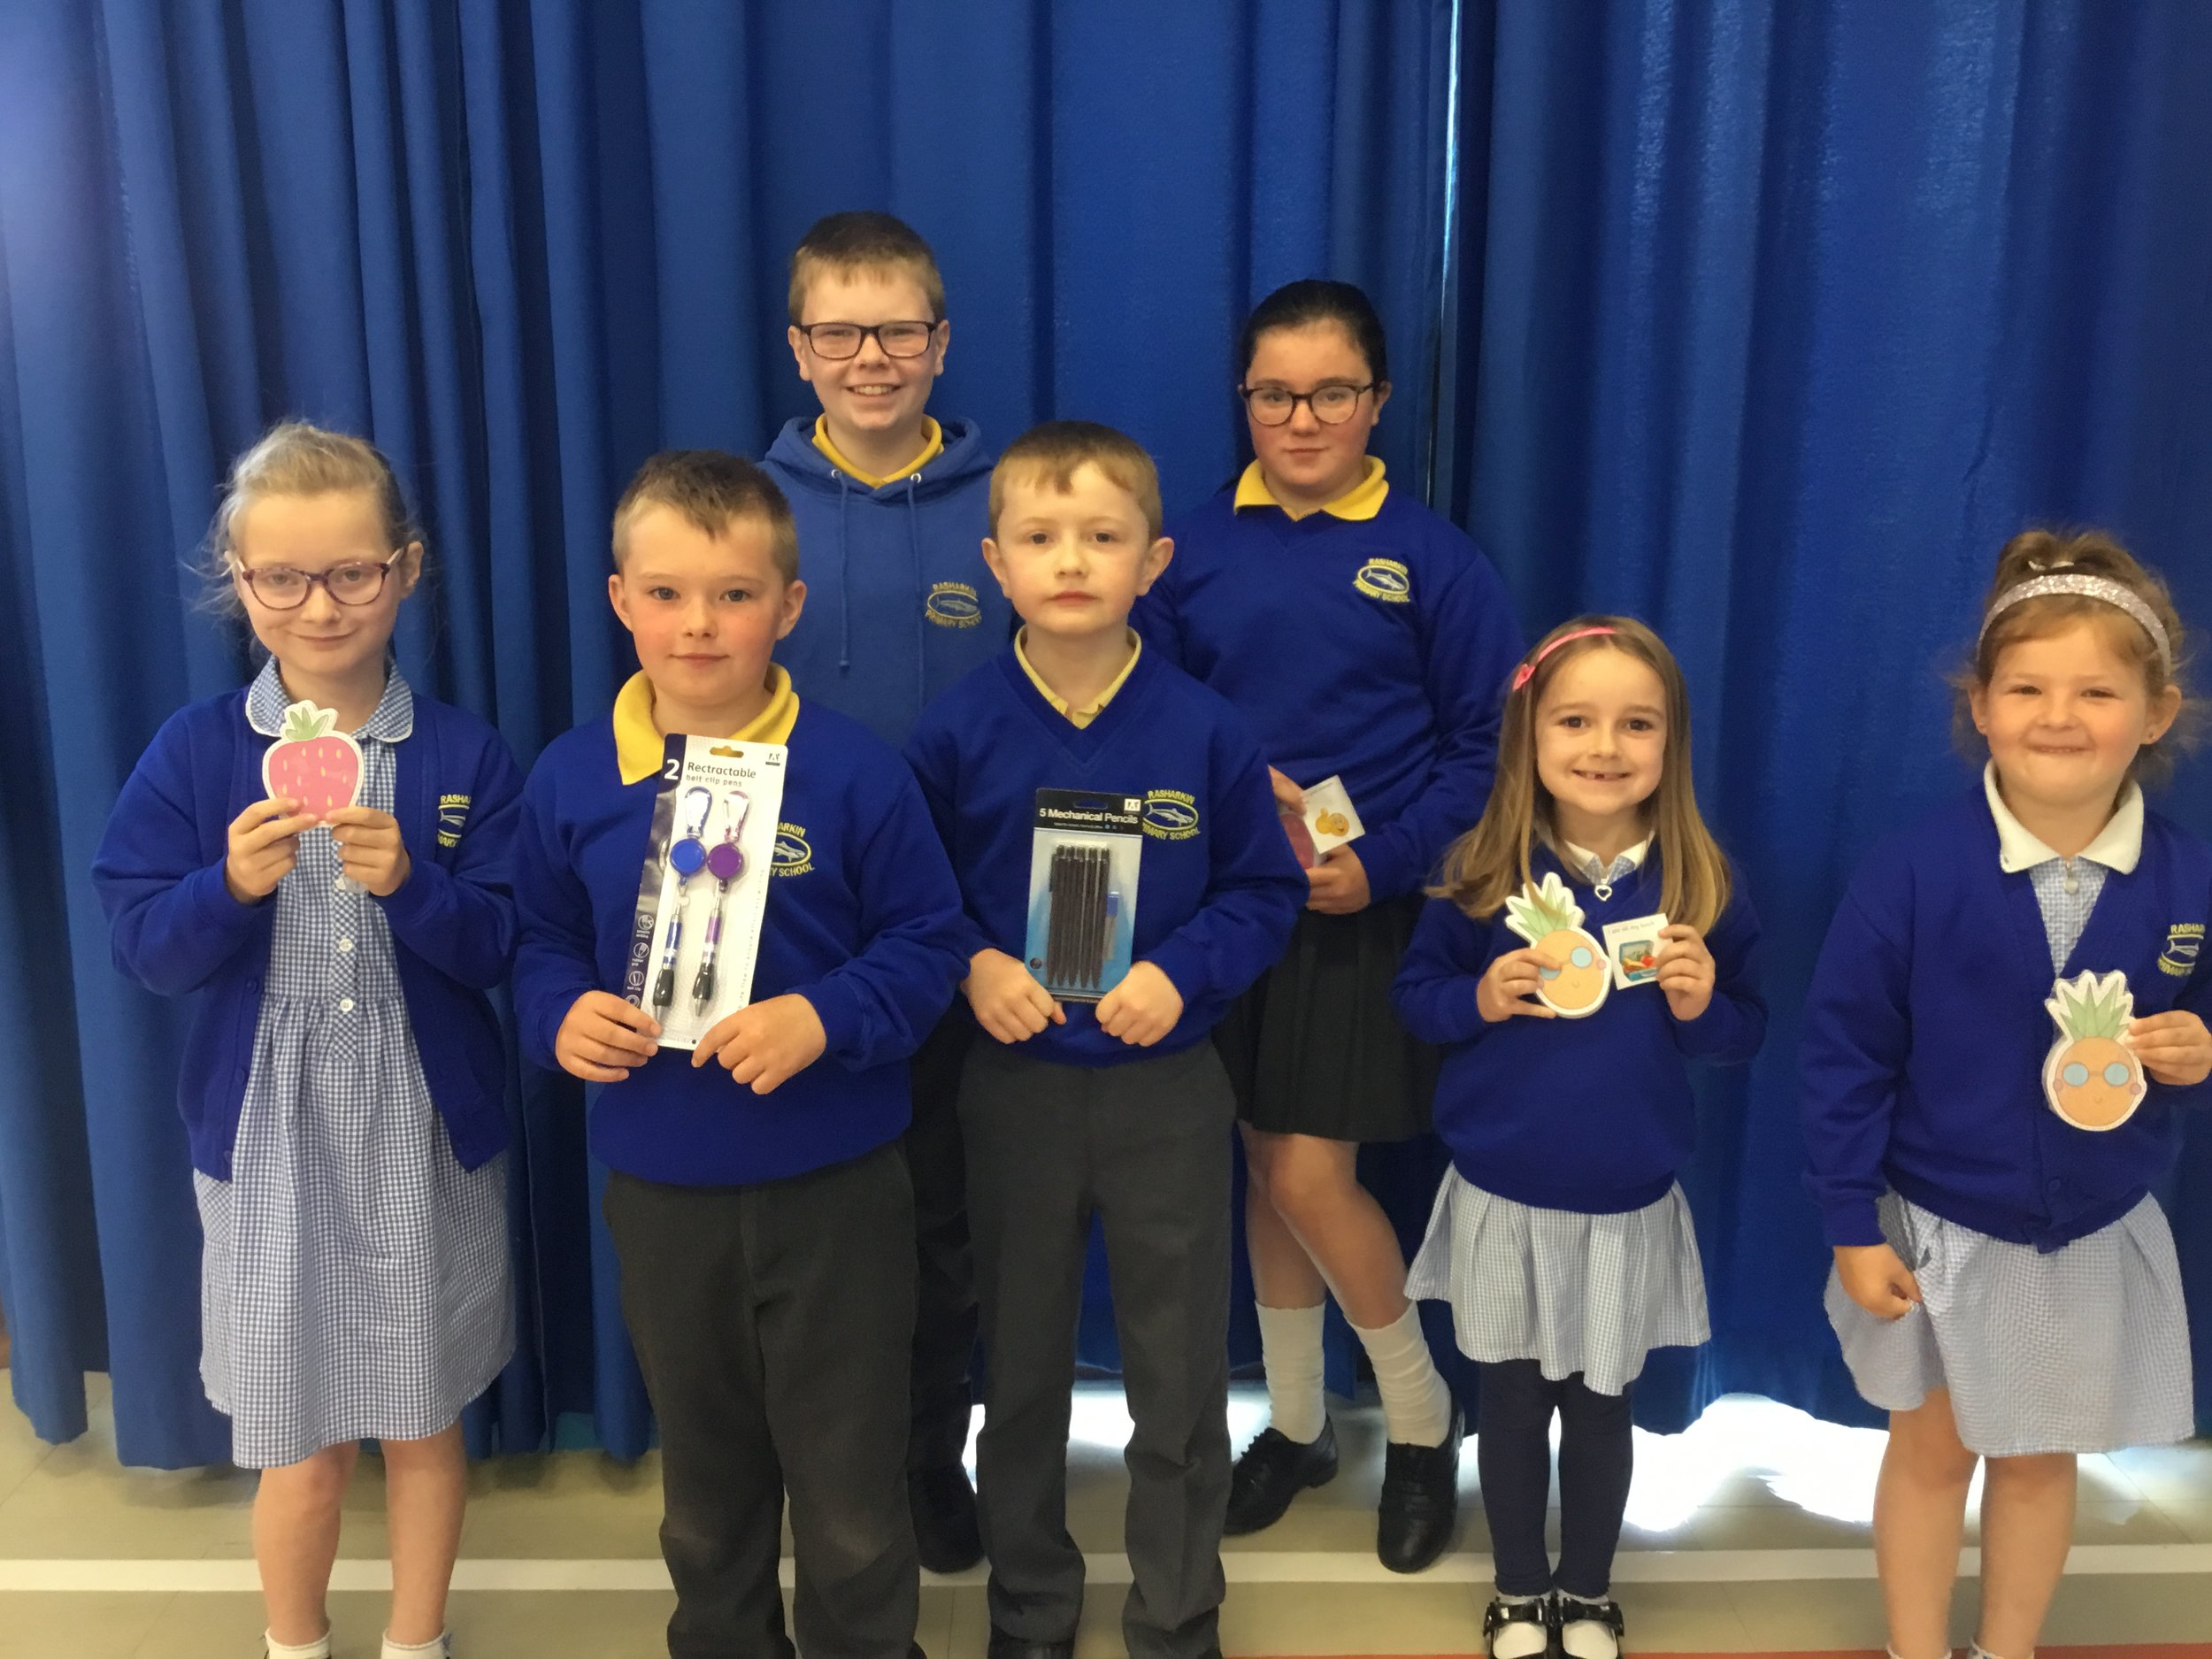 LUNCHTIME AWARD WINNERS